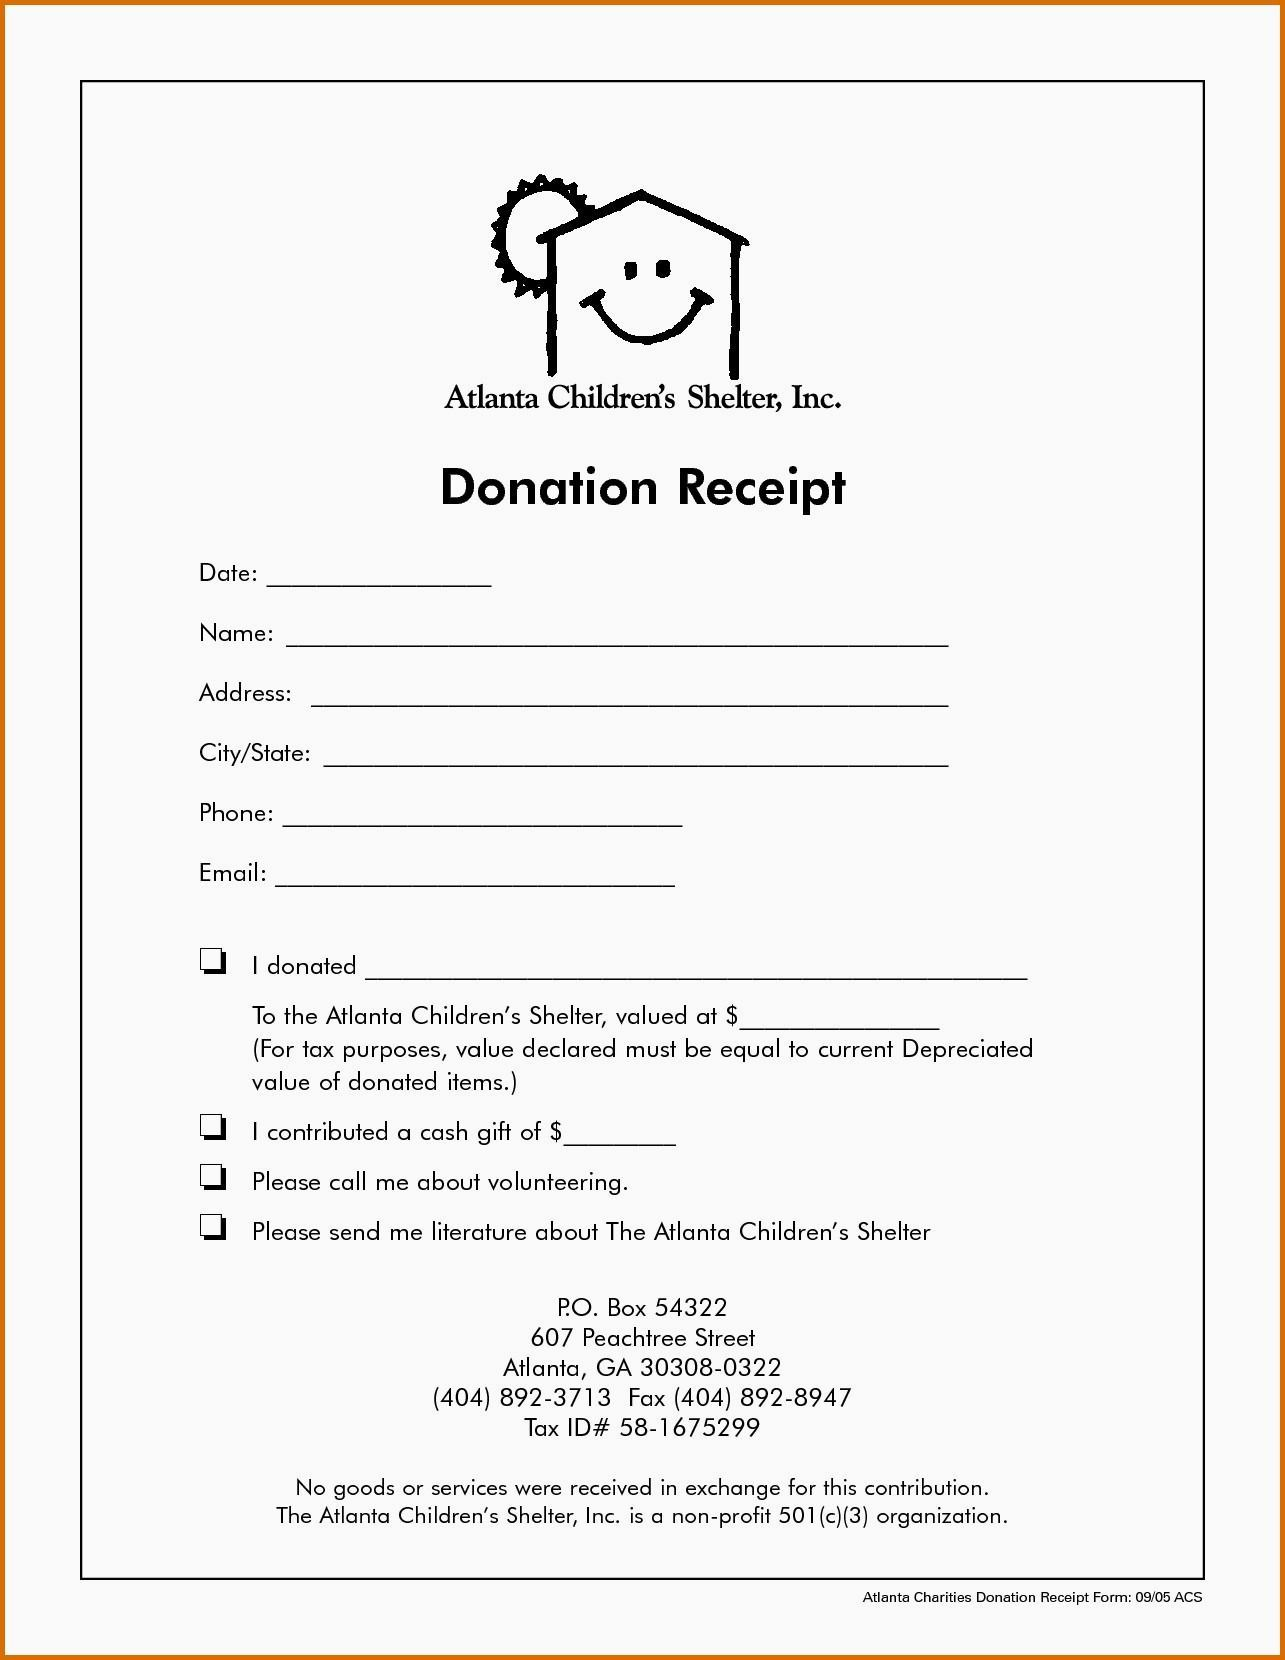 Foundation Investment Policy Statement Template Receipt Template Writing A Mission Statement Non Profit Donations